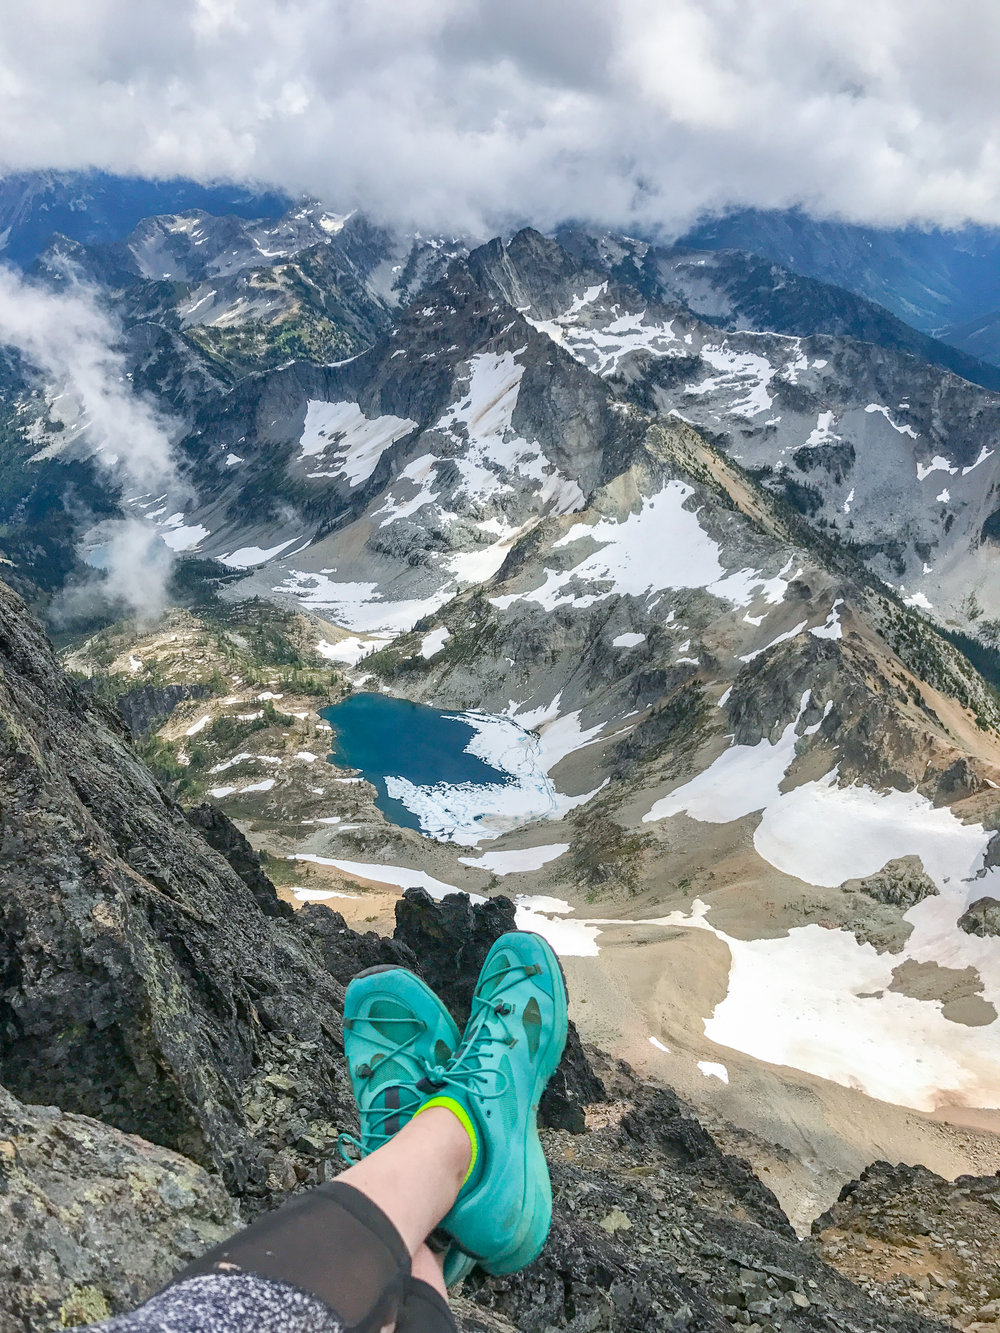 Taking in the views from the summit of Black Peak.